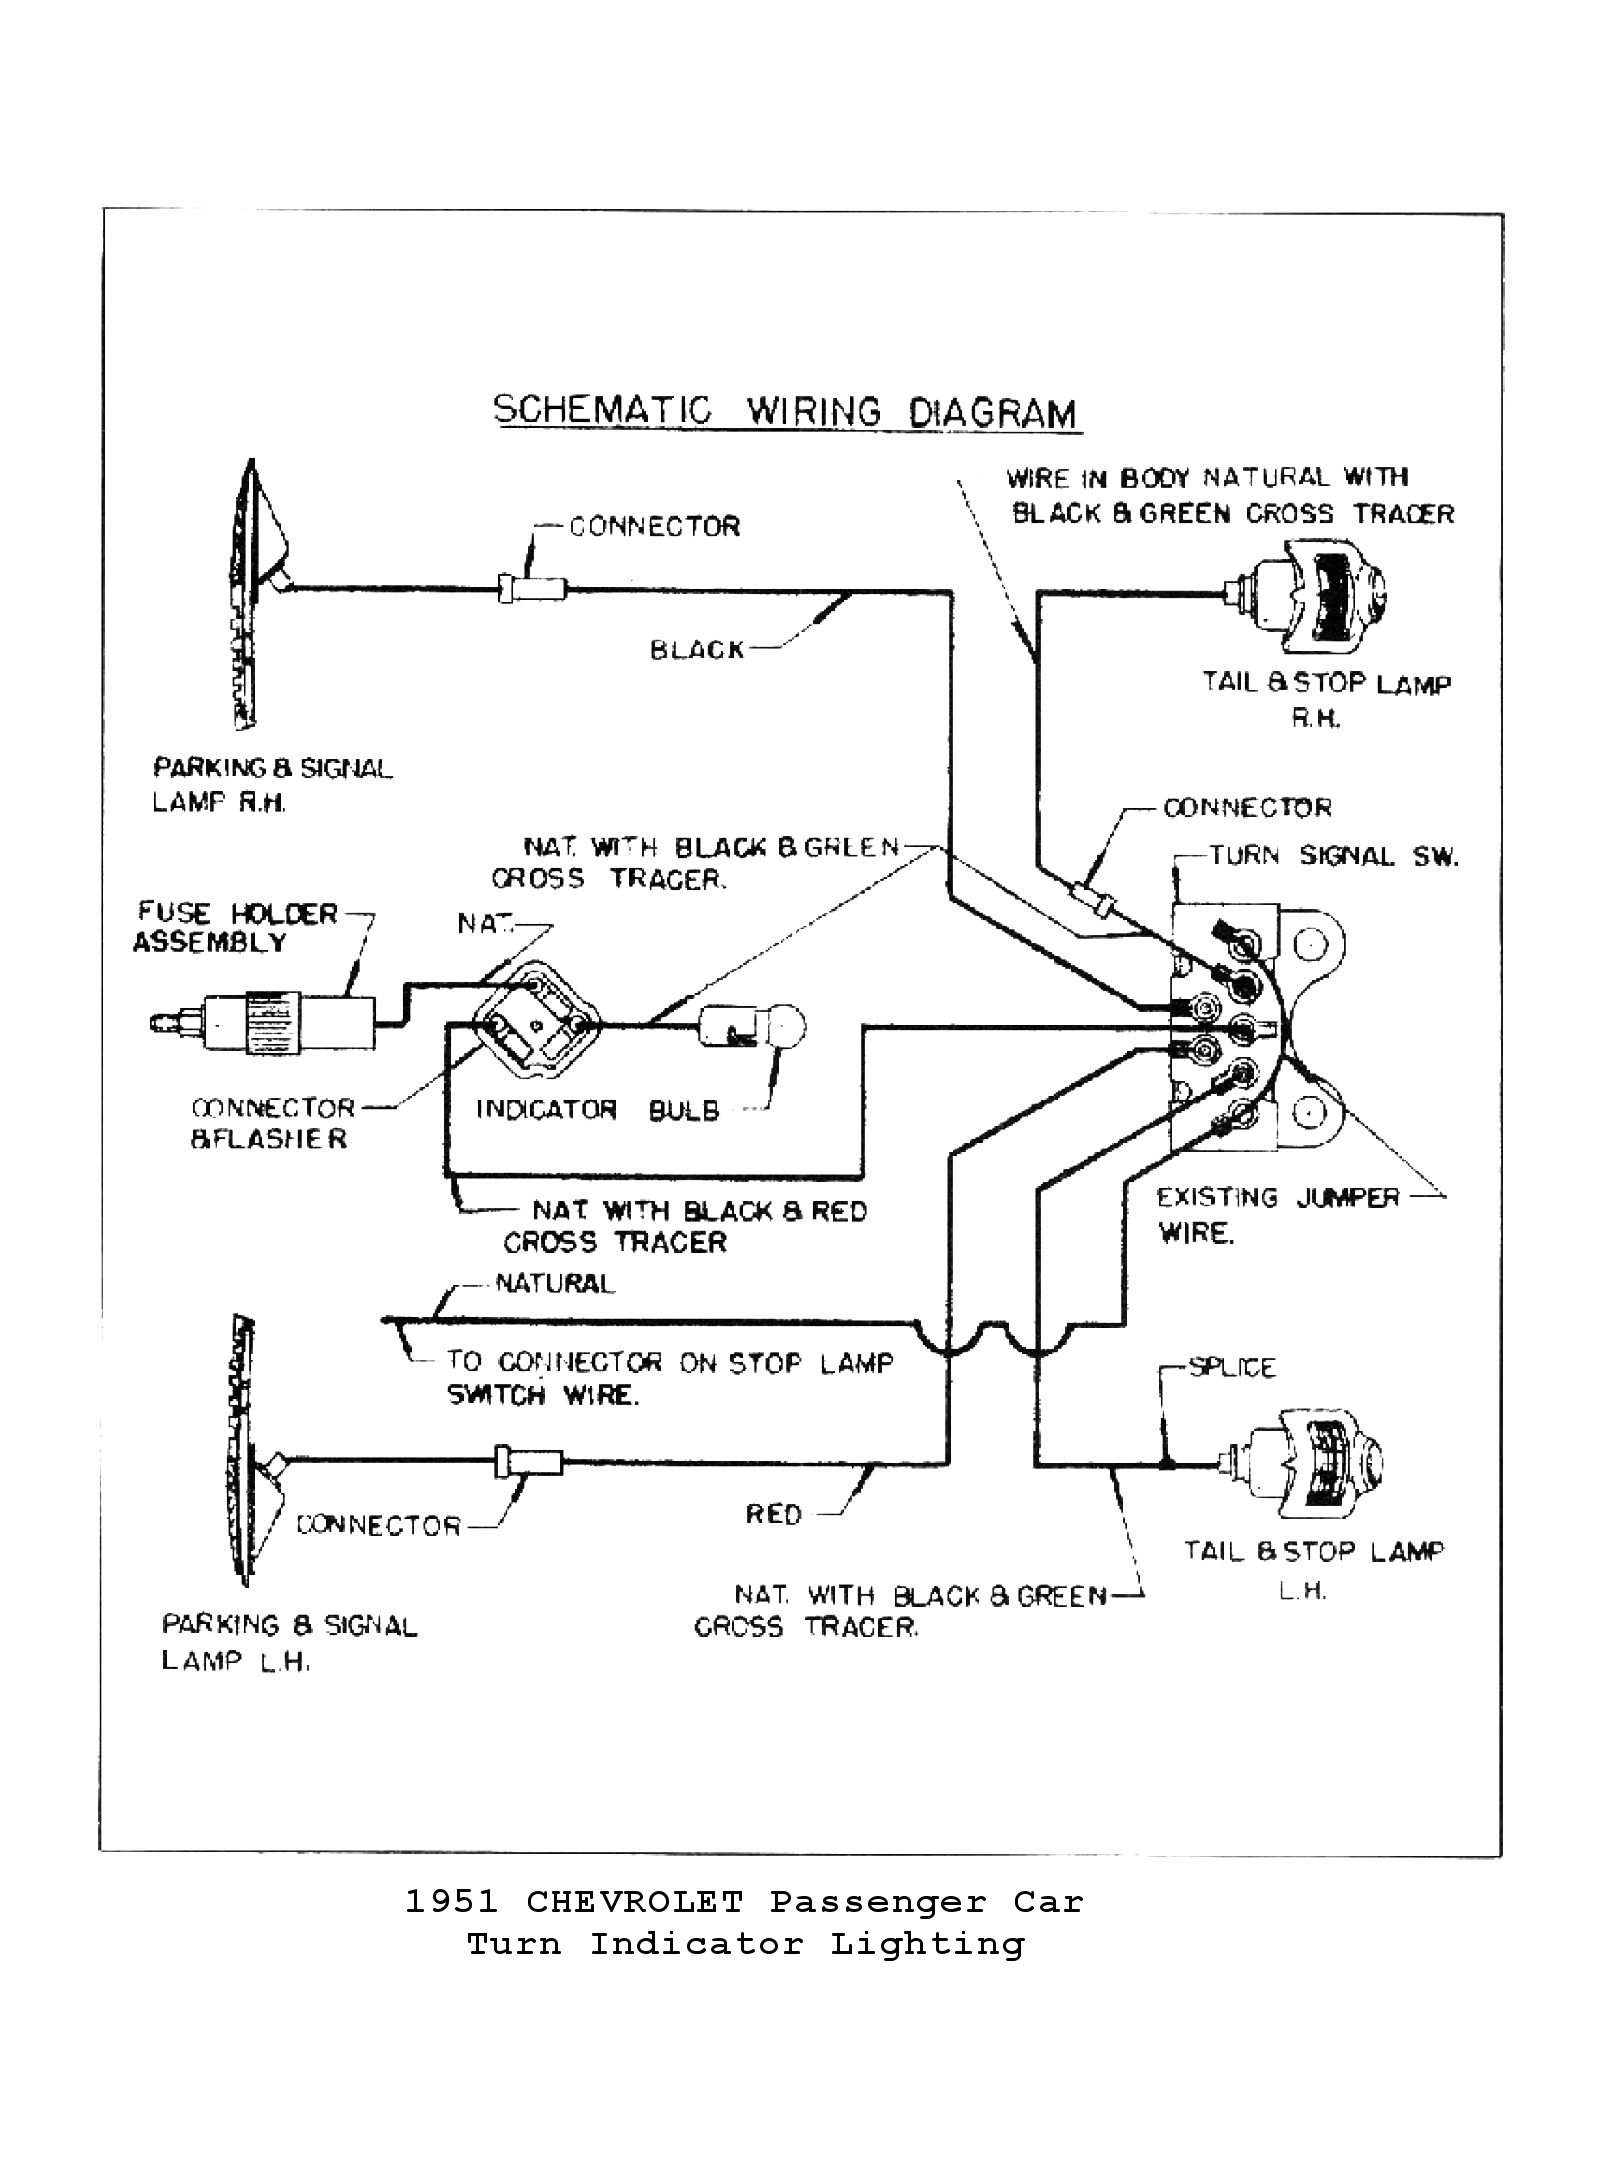 5152turnsignals chevy wiring diagrams 1950 chevy truck wiring diagram at alyssarenee.co